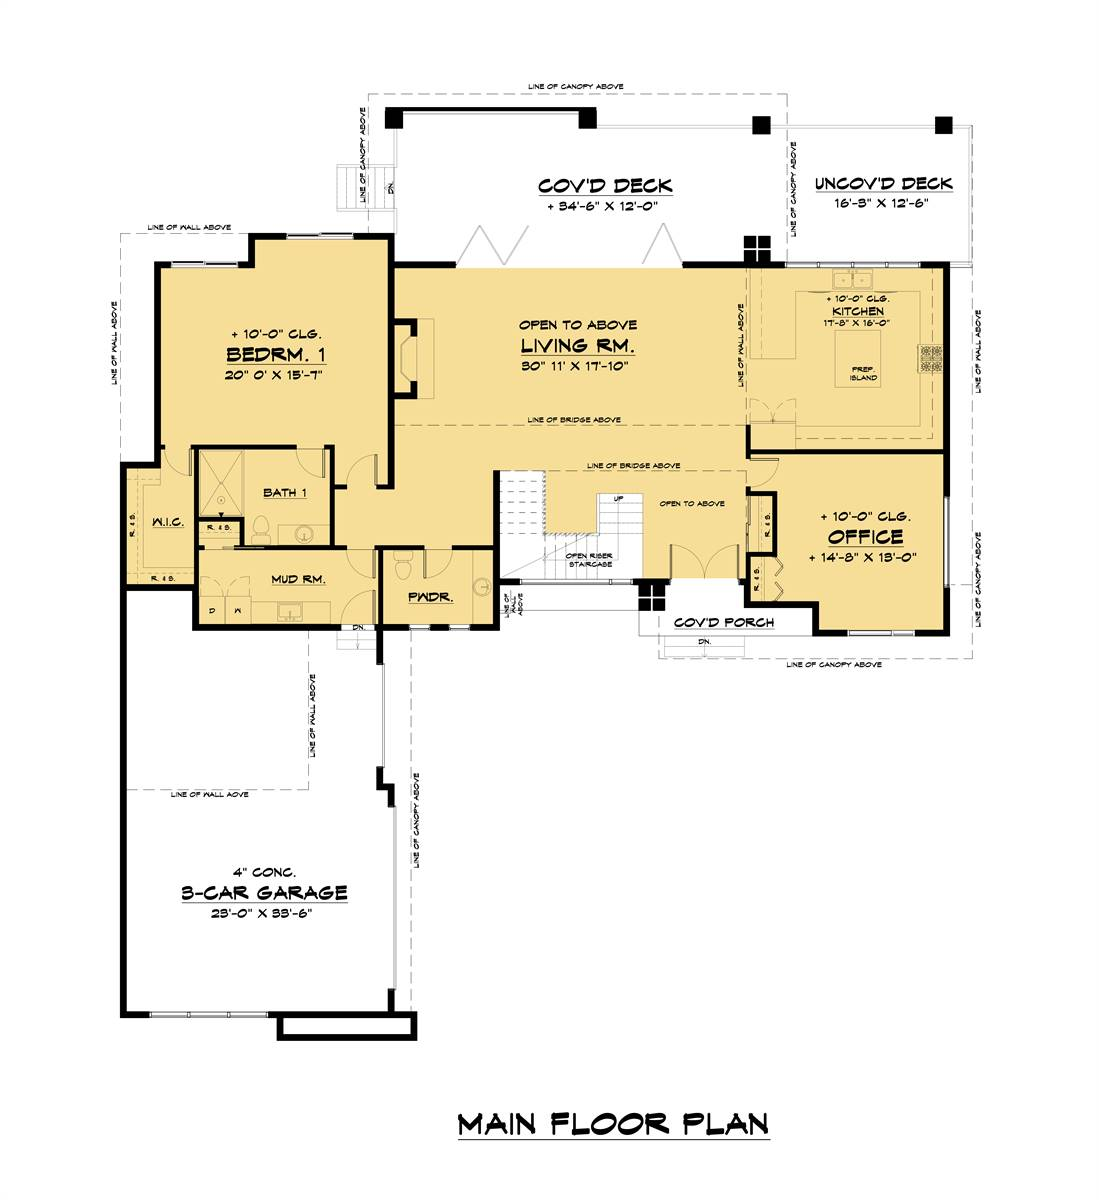 Main Floor Plan image of Featured House Plan: PBH - 7539